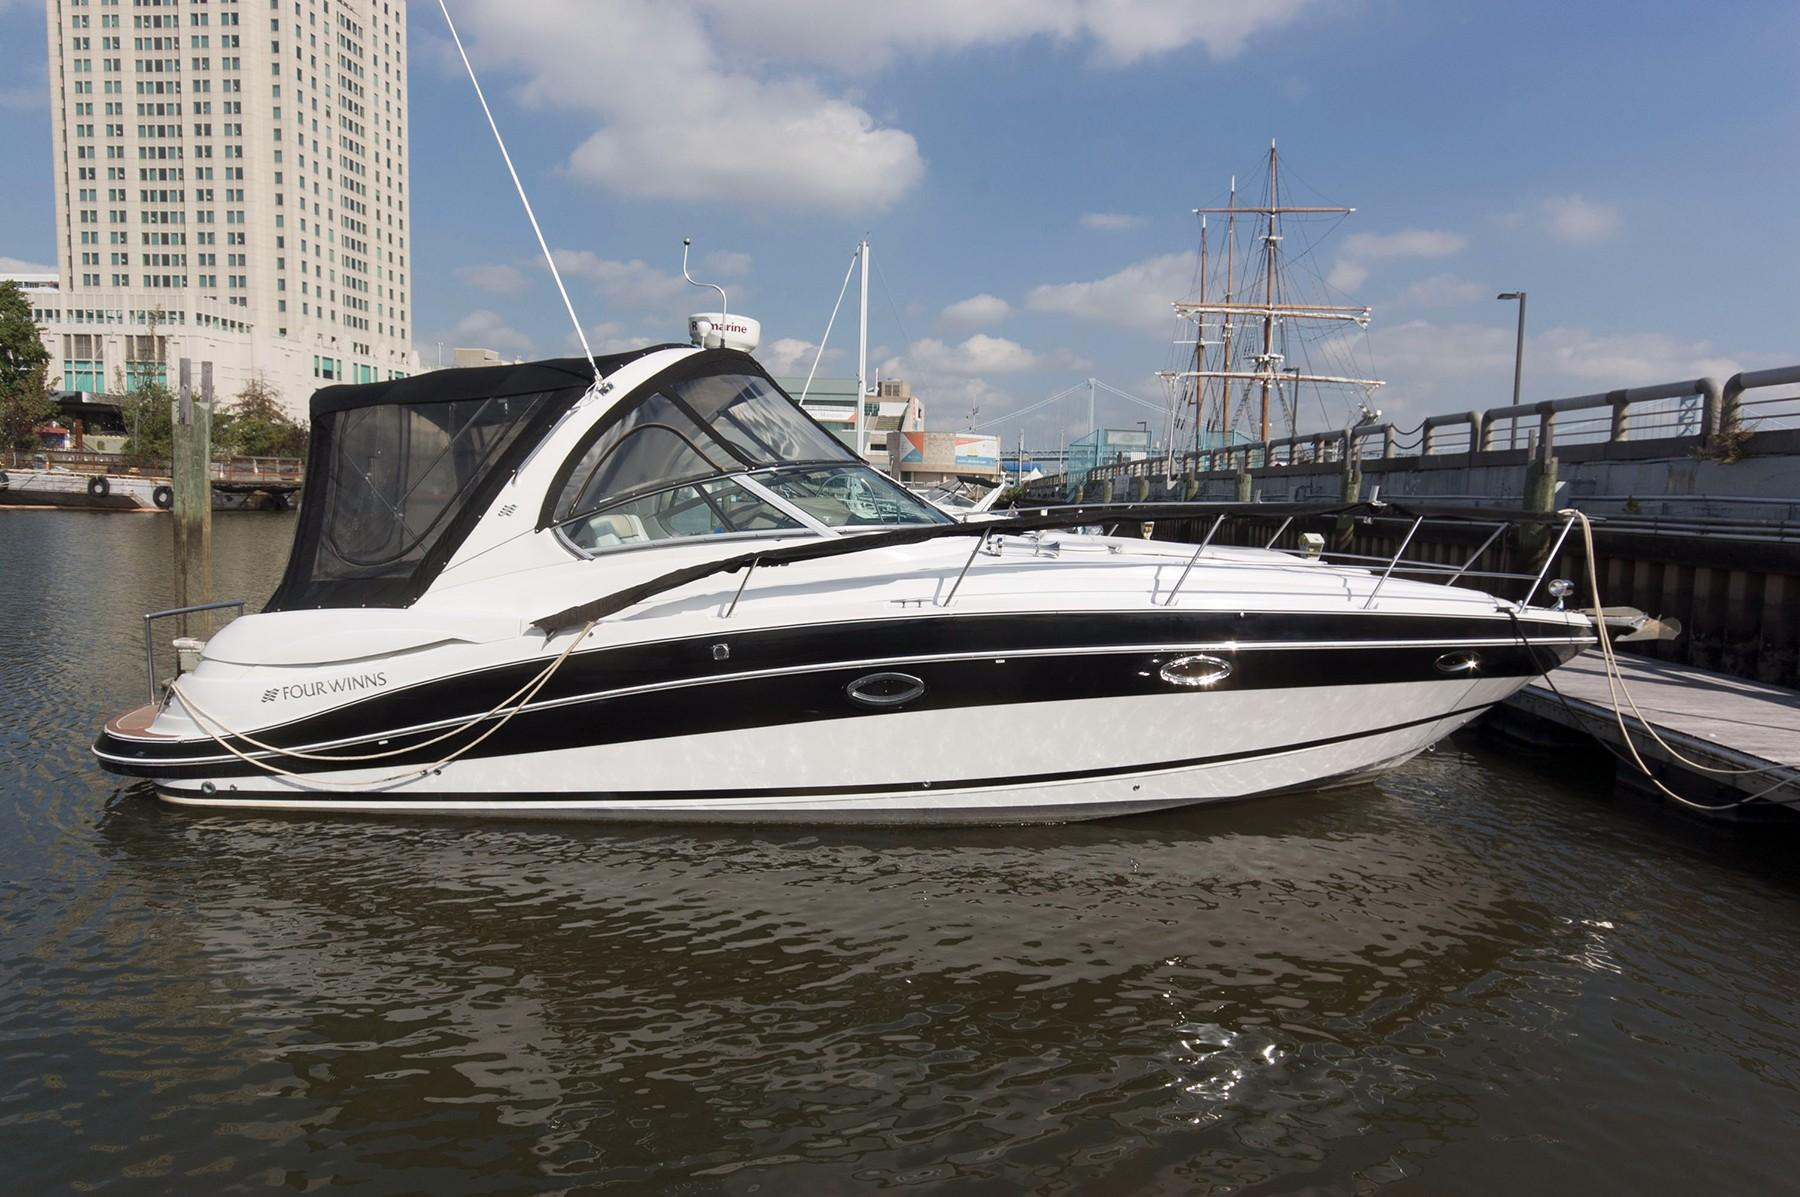 6386549_20171006162037250_1_XLARGE&w=520&h=346&t=1507335889000 search boats for sale yachtworld com  at crackthecode.co